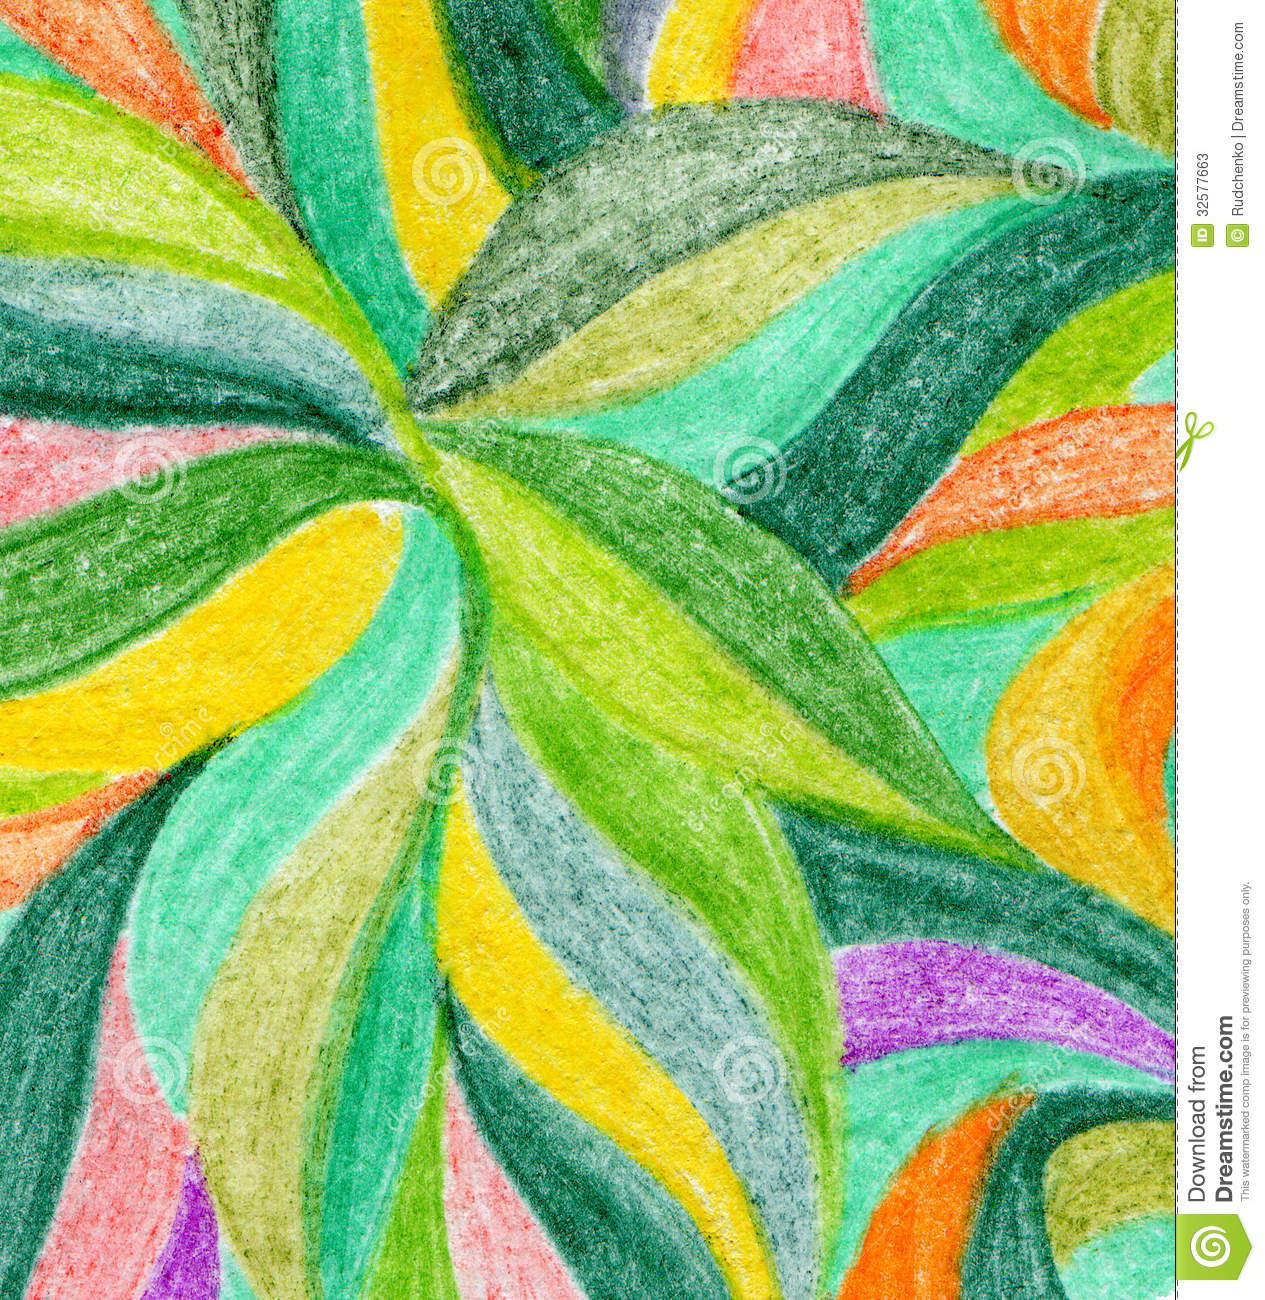 abstract color pencil background stock image - image: 33306107, Powerpoint templates